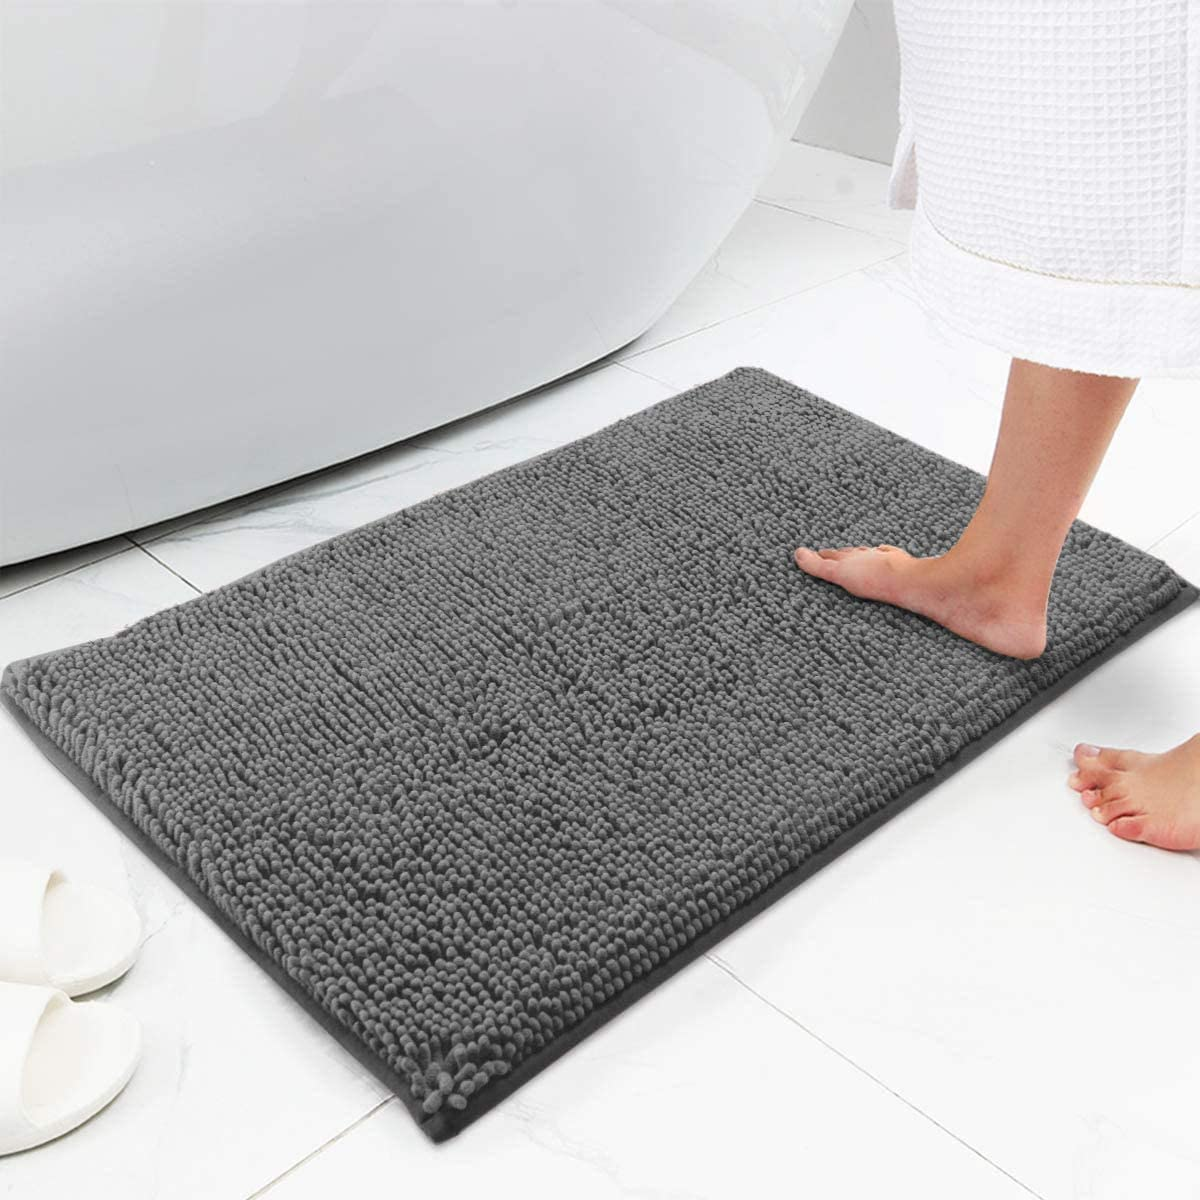 Bath Mat Chenille Bath Rug, Extra Soft and Absorbent Shaggy Bathroom Mat Rugs, Washable, Strong Underside, Plush Carpet Mats for Kids Tub, Shower, and Bath Room (28x55 Inch, Gray)